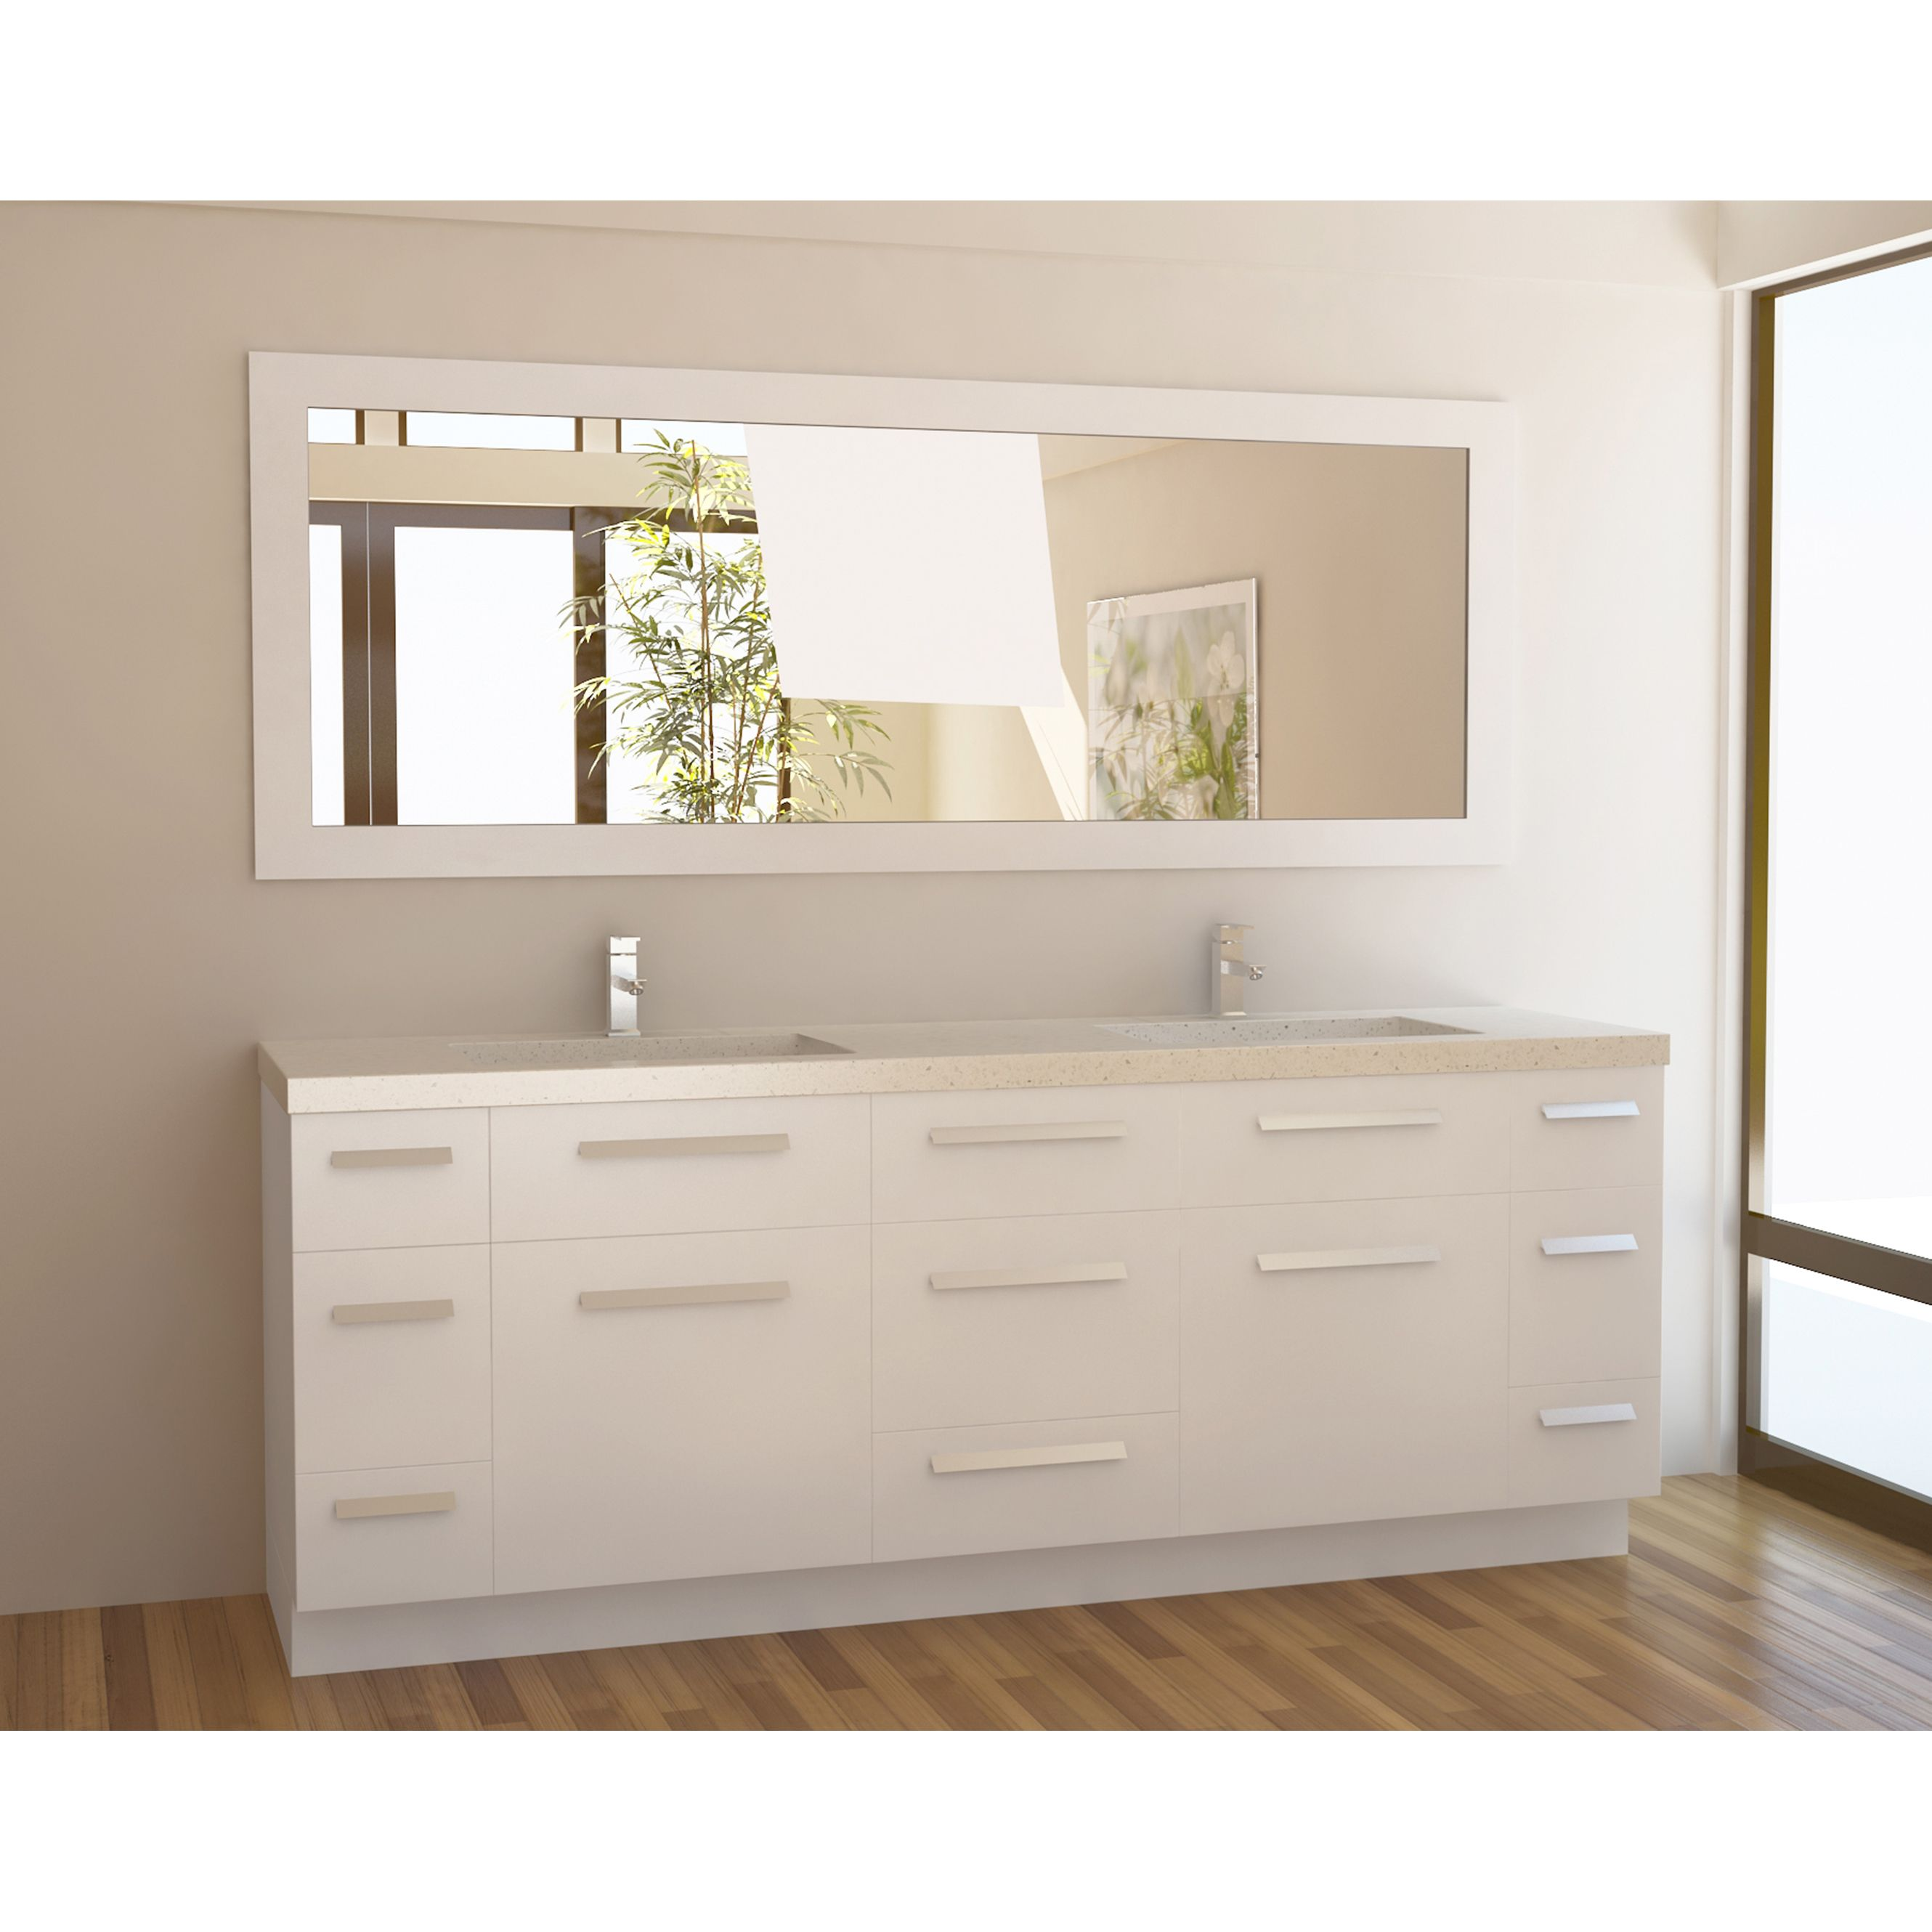 The Moscony vanities have solid oak construction, simple lines, wide ...